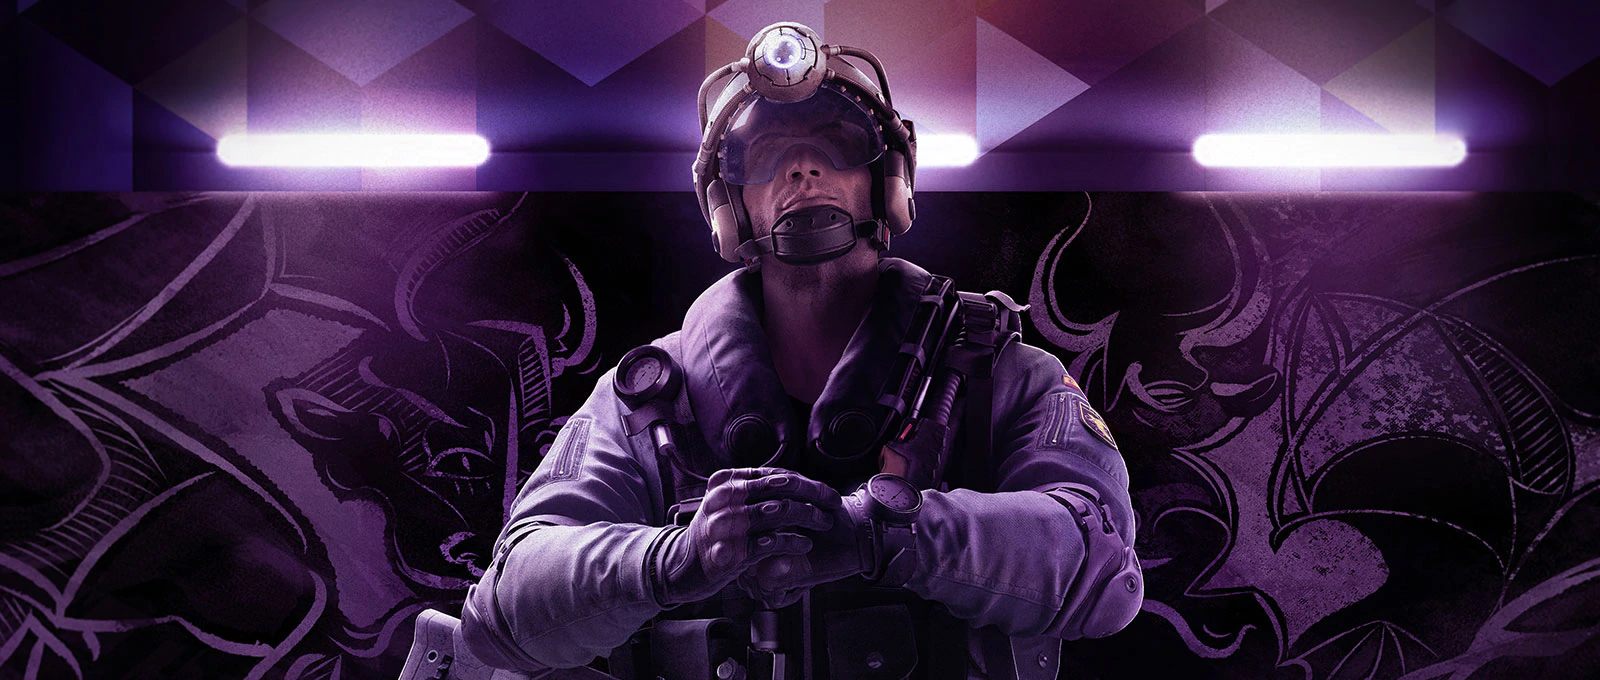 Rainbow Six Siege could get an operator from Splinter Cell, according to data miner